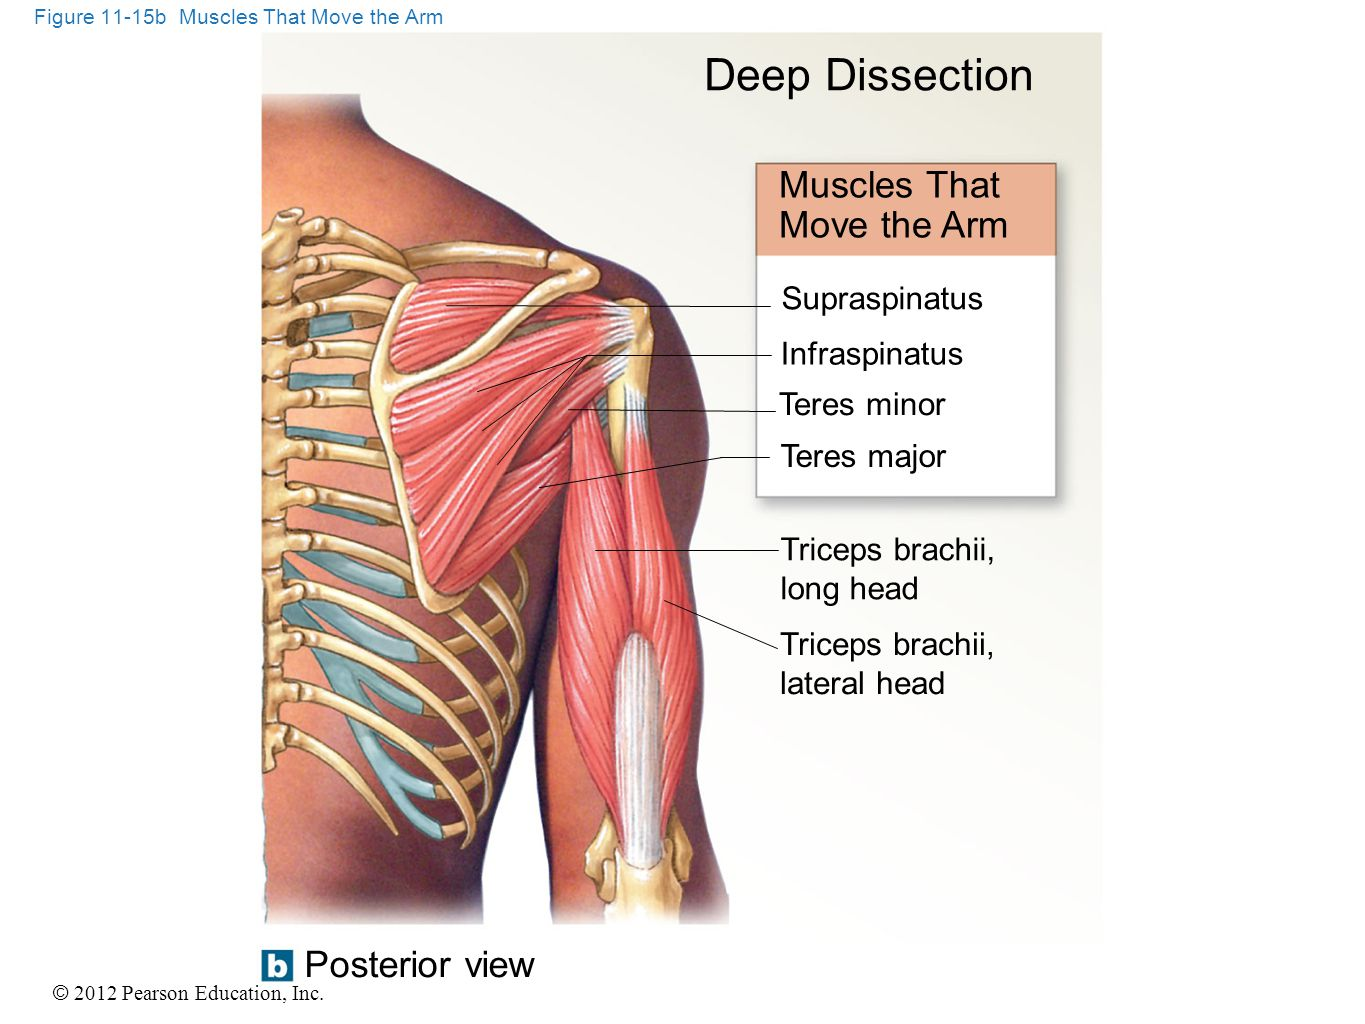 © 2012 Pearson Education, Inc. Figure 11-15b Muscles That Move the Arm Deep Dissection Muscles That Move the Arm Supraspinatus Infraspinatus Teres min